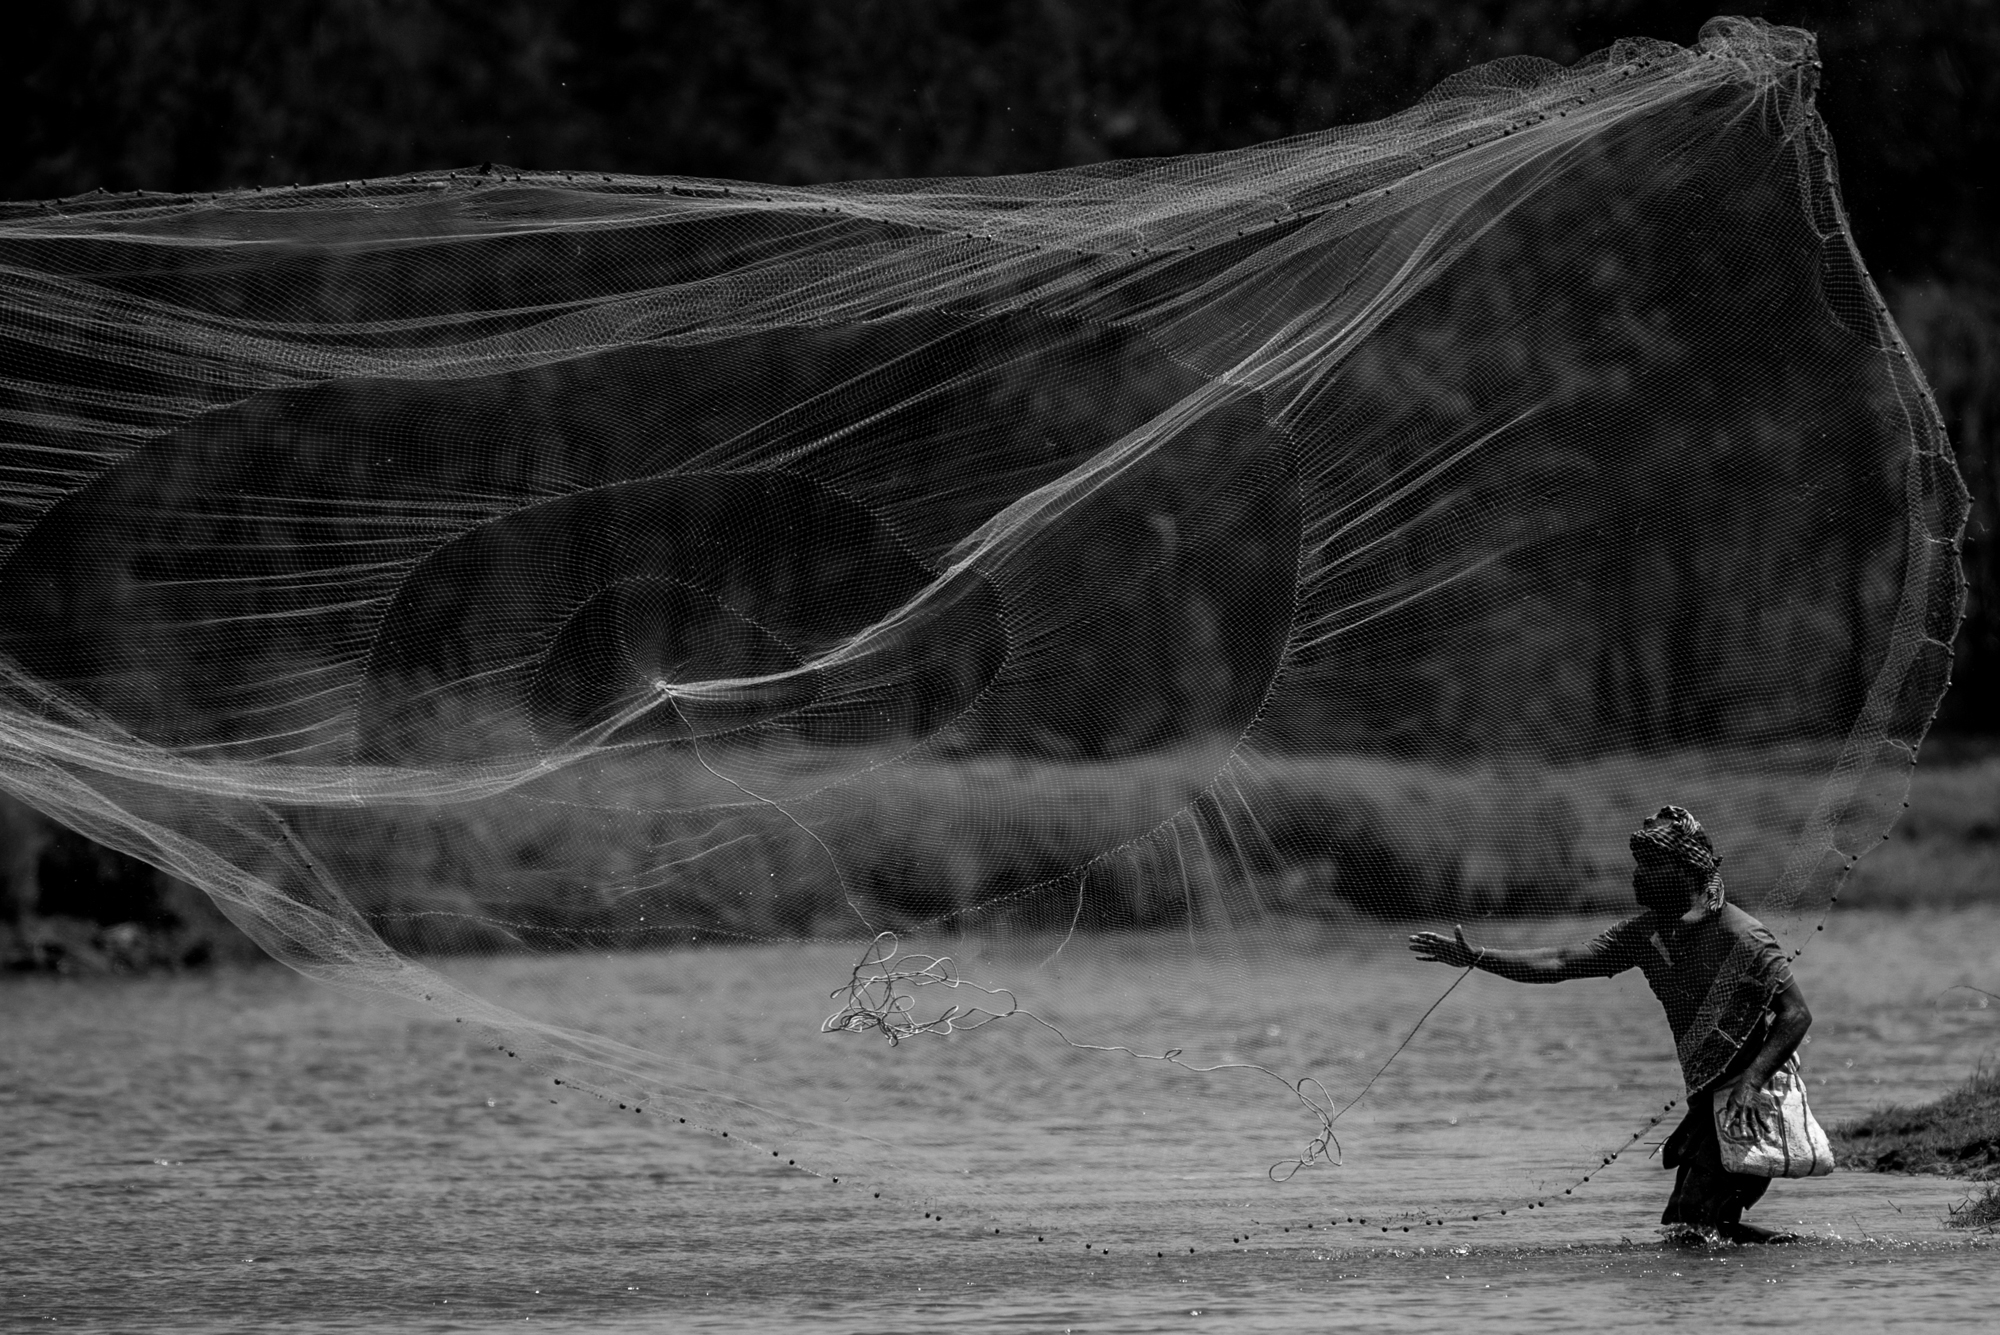 Normally the fishing net is thrown in a way that the design of the net is not completely visible from eye level. But this person was throwing  the net where I could see the design of the net like a chakravyuh where the fishes are the victims.